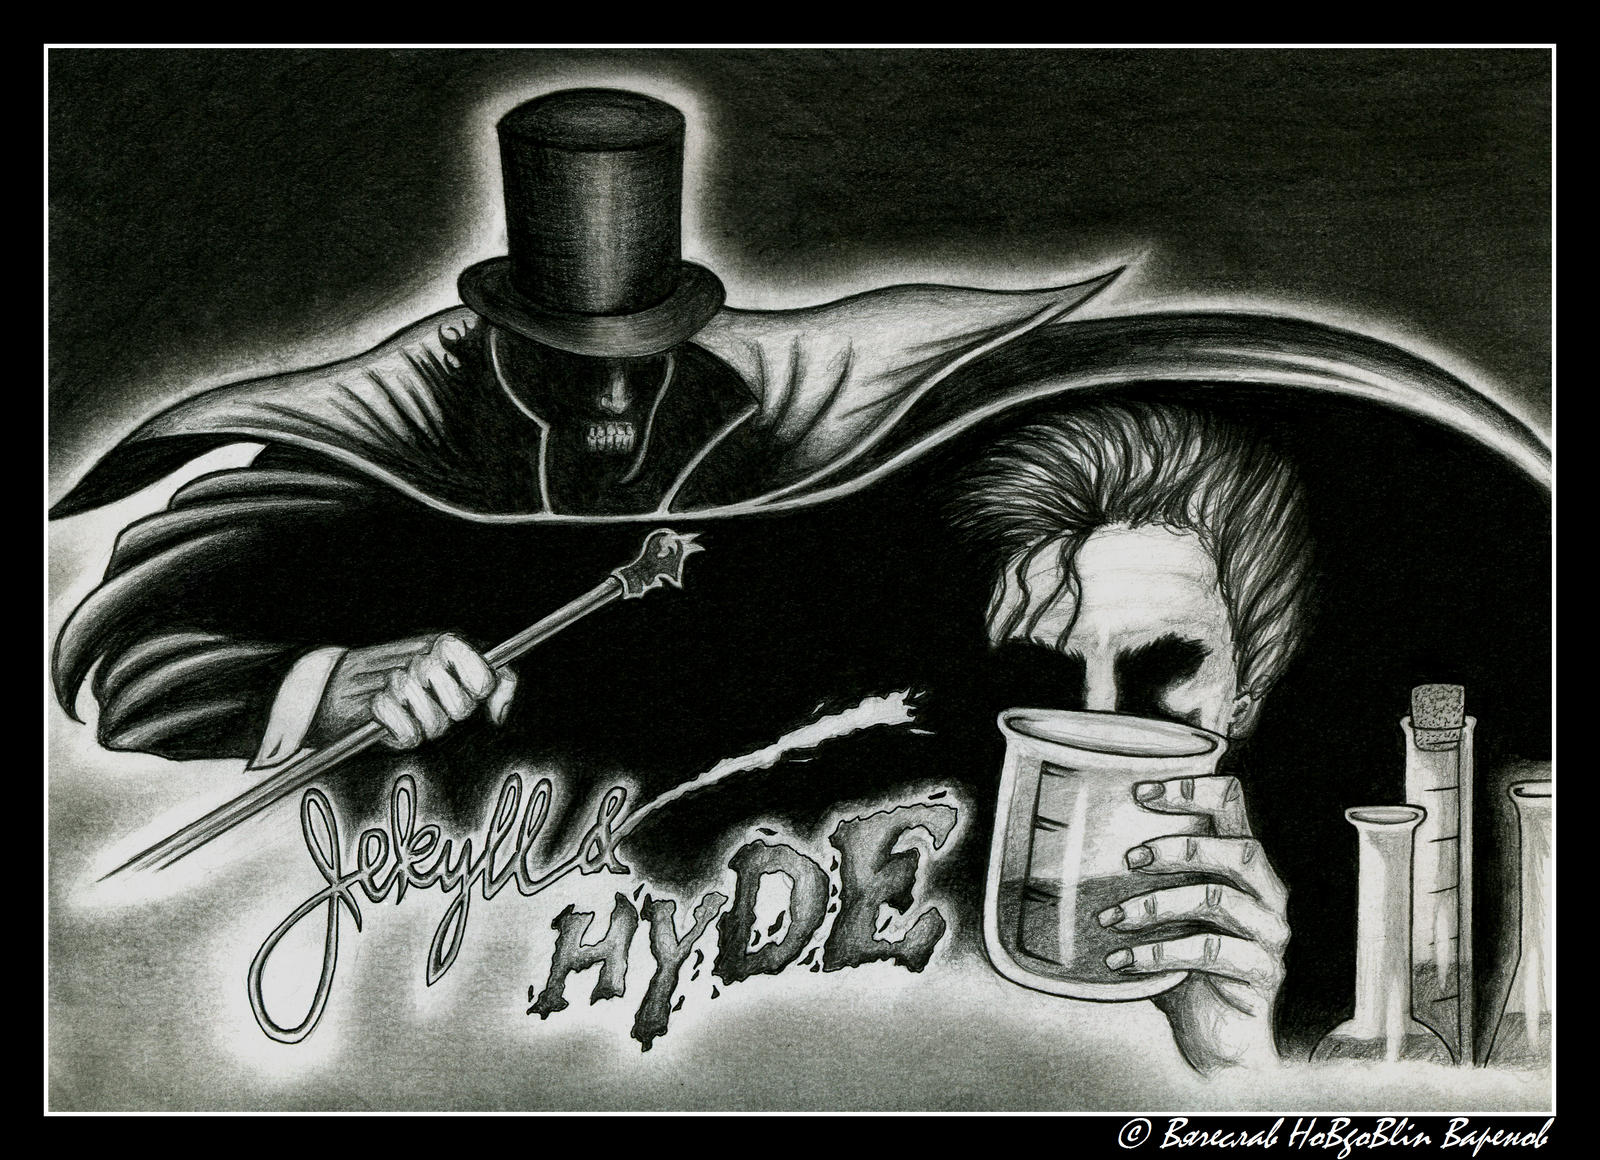 jekyll and hyde contrast A list of all the characters in dr jekyll and mr hyde the dr jekyll and mr hyde world, the world of conscious articulation or logical grammar hyde is jekyll's dark lanyon serves a foil (a character whose attitudes or emotions contrast with, and thereby.